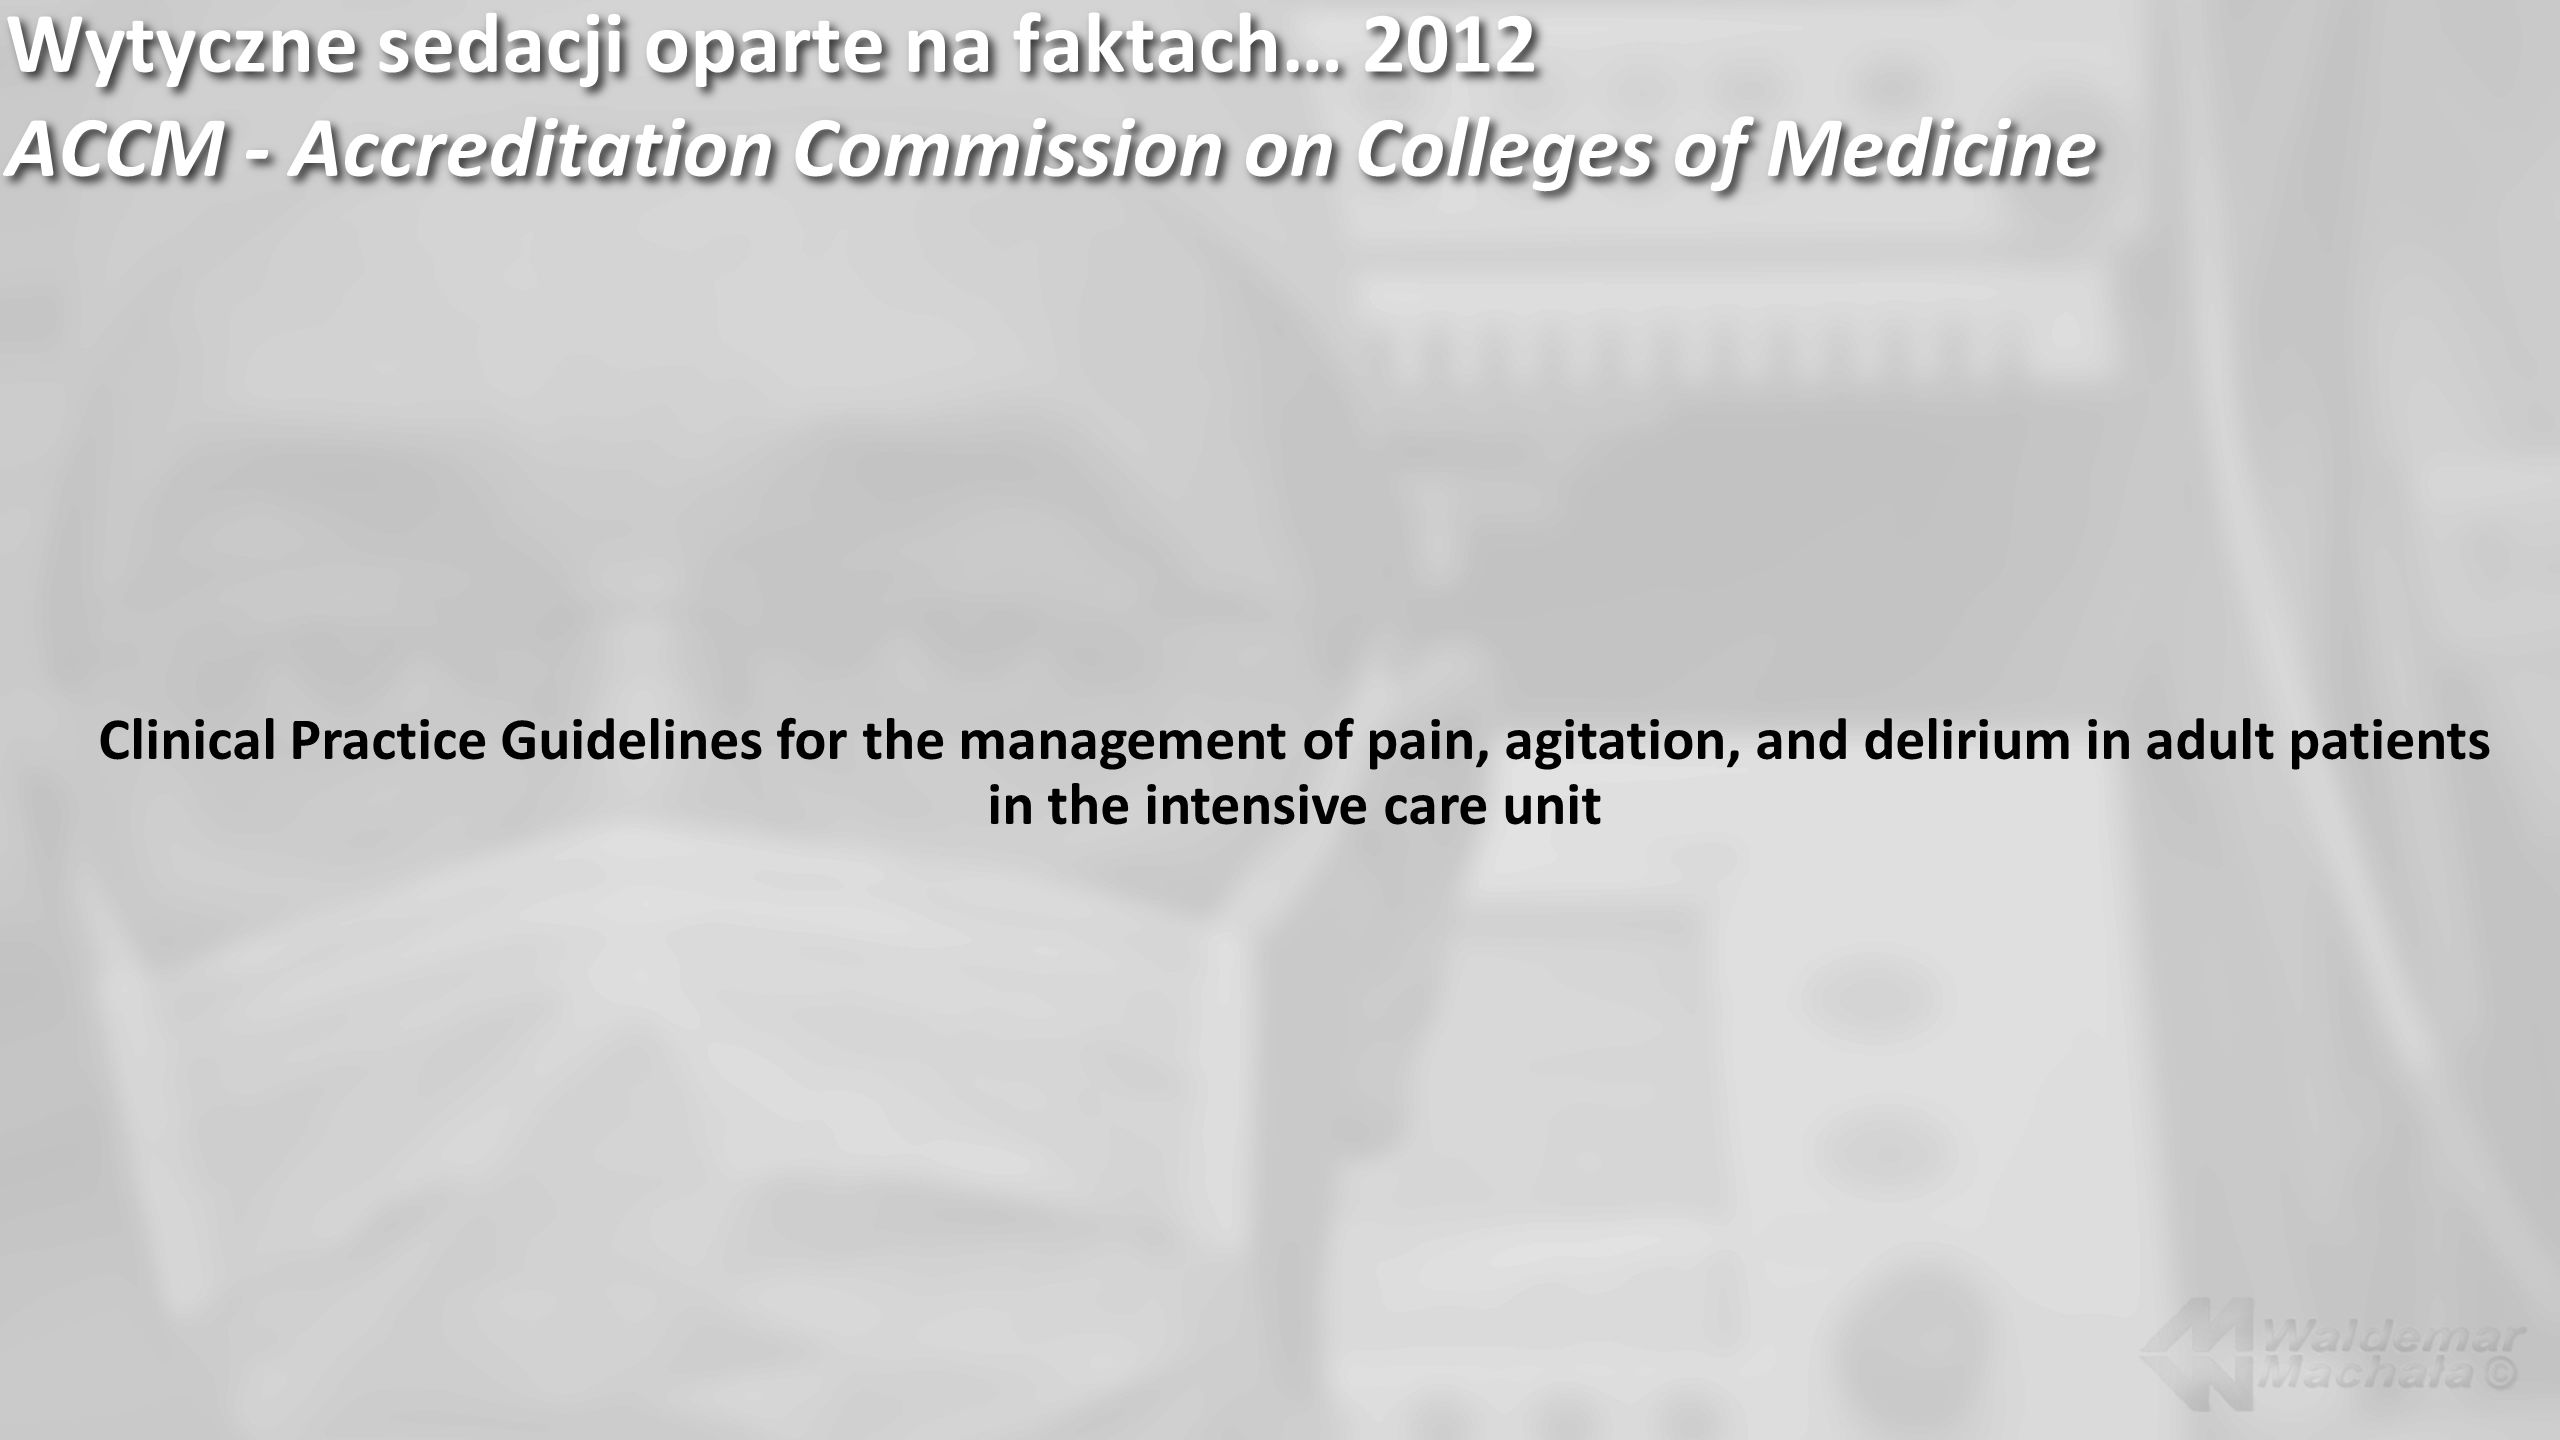 Wytyczne sedacji oparte na faktach… 2012 ACCM - Accreditation Commission on Colleges of Medicine